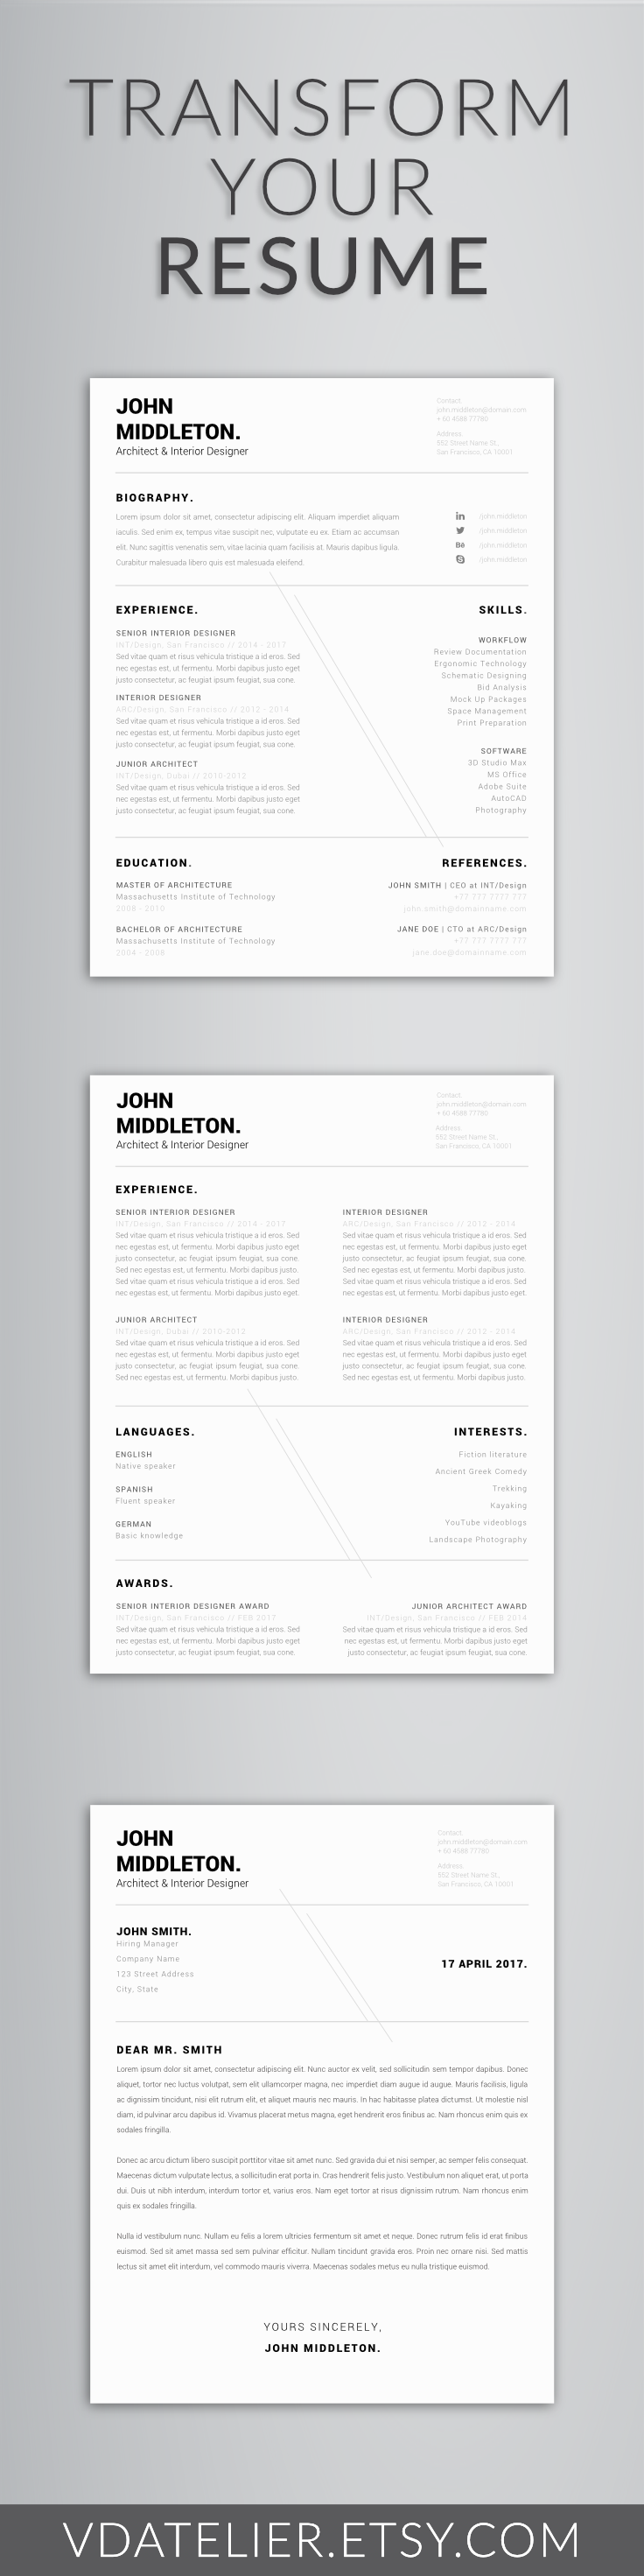 minimalist resume template for word professional men resume cover letter curriculum vitae us letter a4 12 page resume. Resume Example. Resume CV Cover Letter